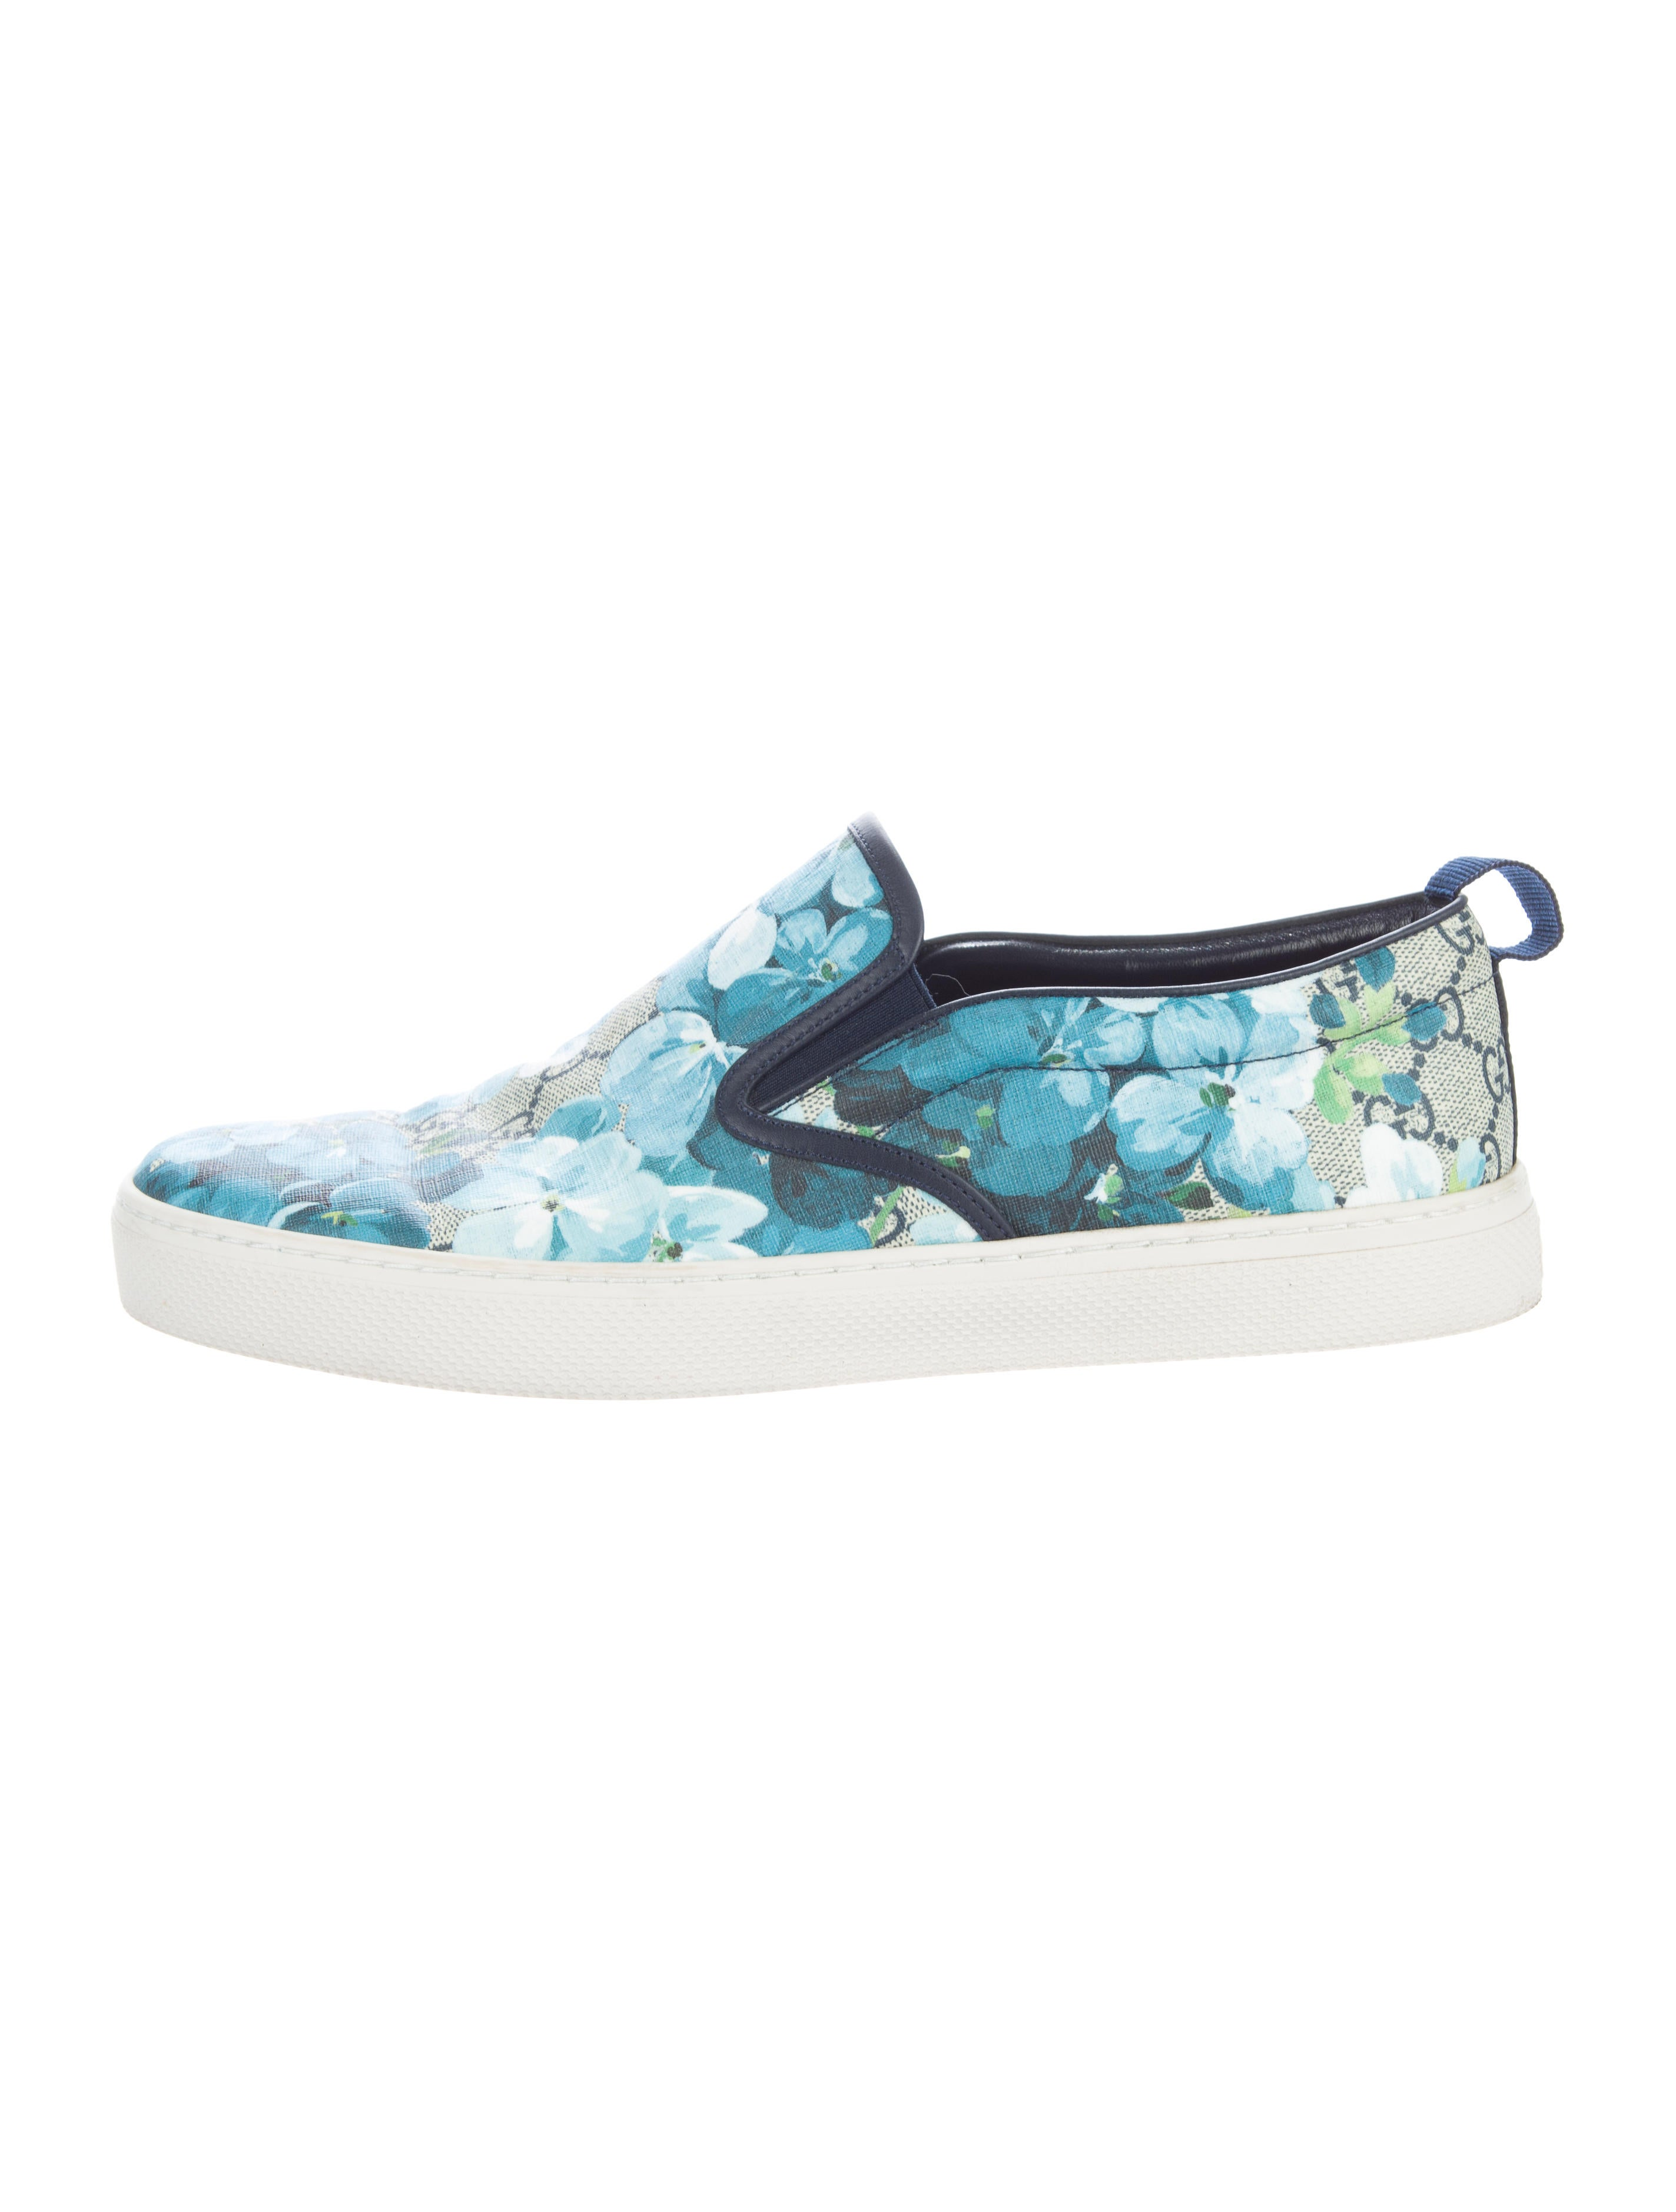 c1fda882f53 Gucci GG Blooms Slip-On Sneakers - Shoes - GUC121788